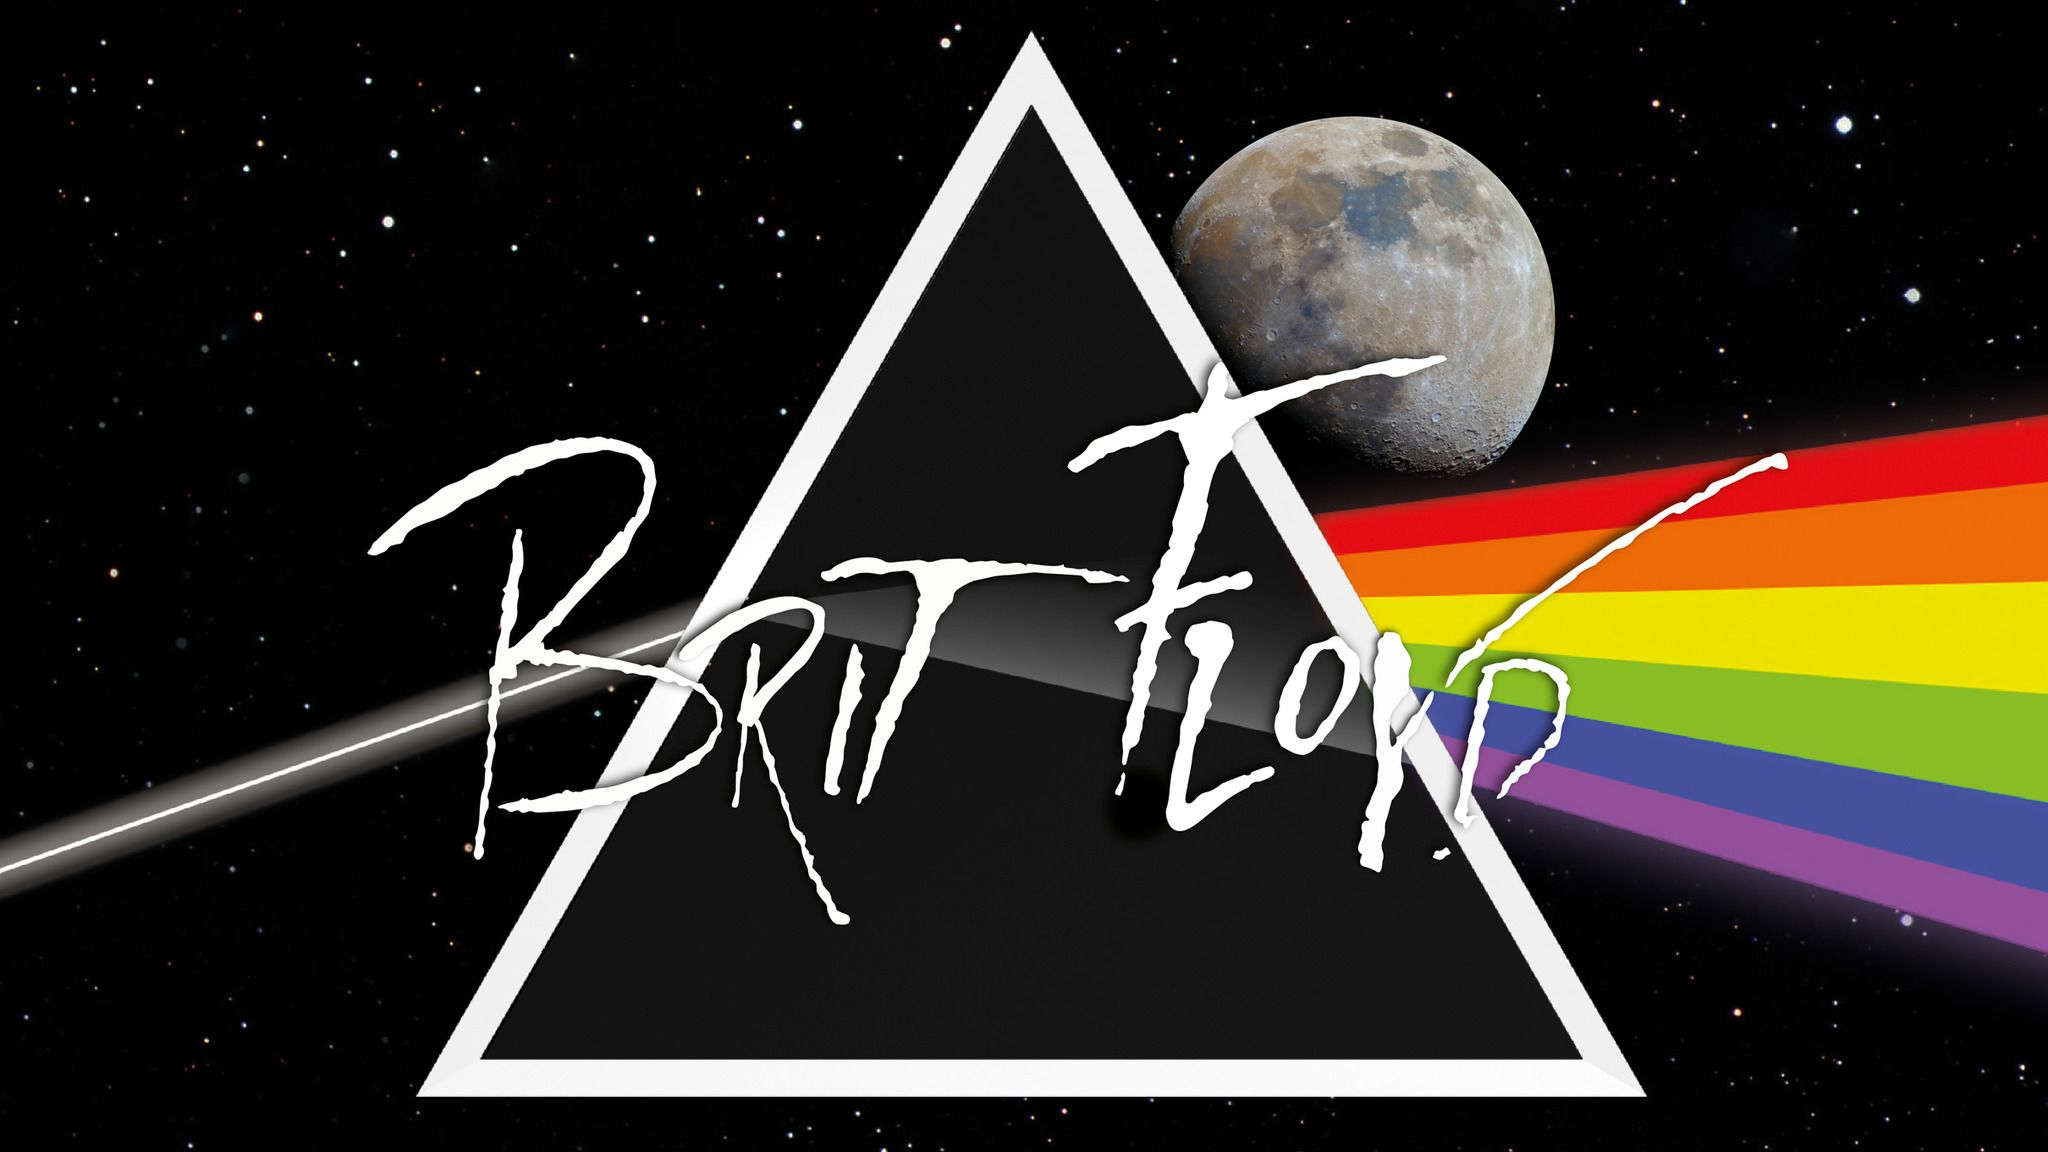 Brit Floyd - ECLIPSE World Tour 2018 - VIP